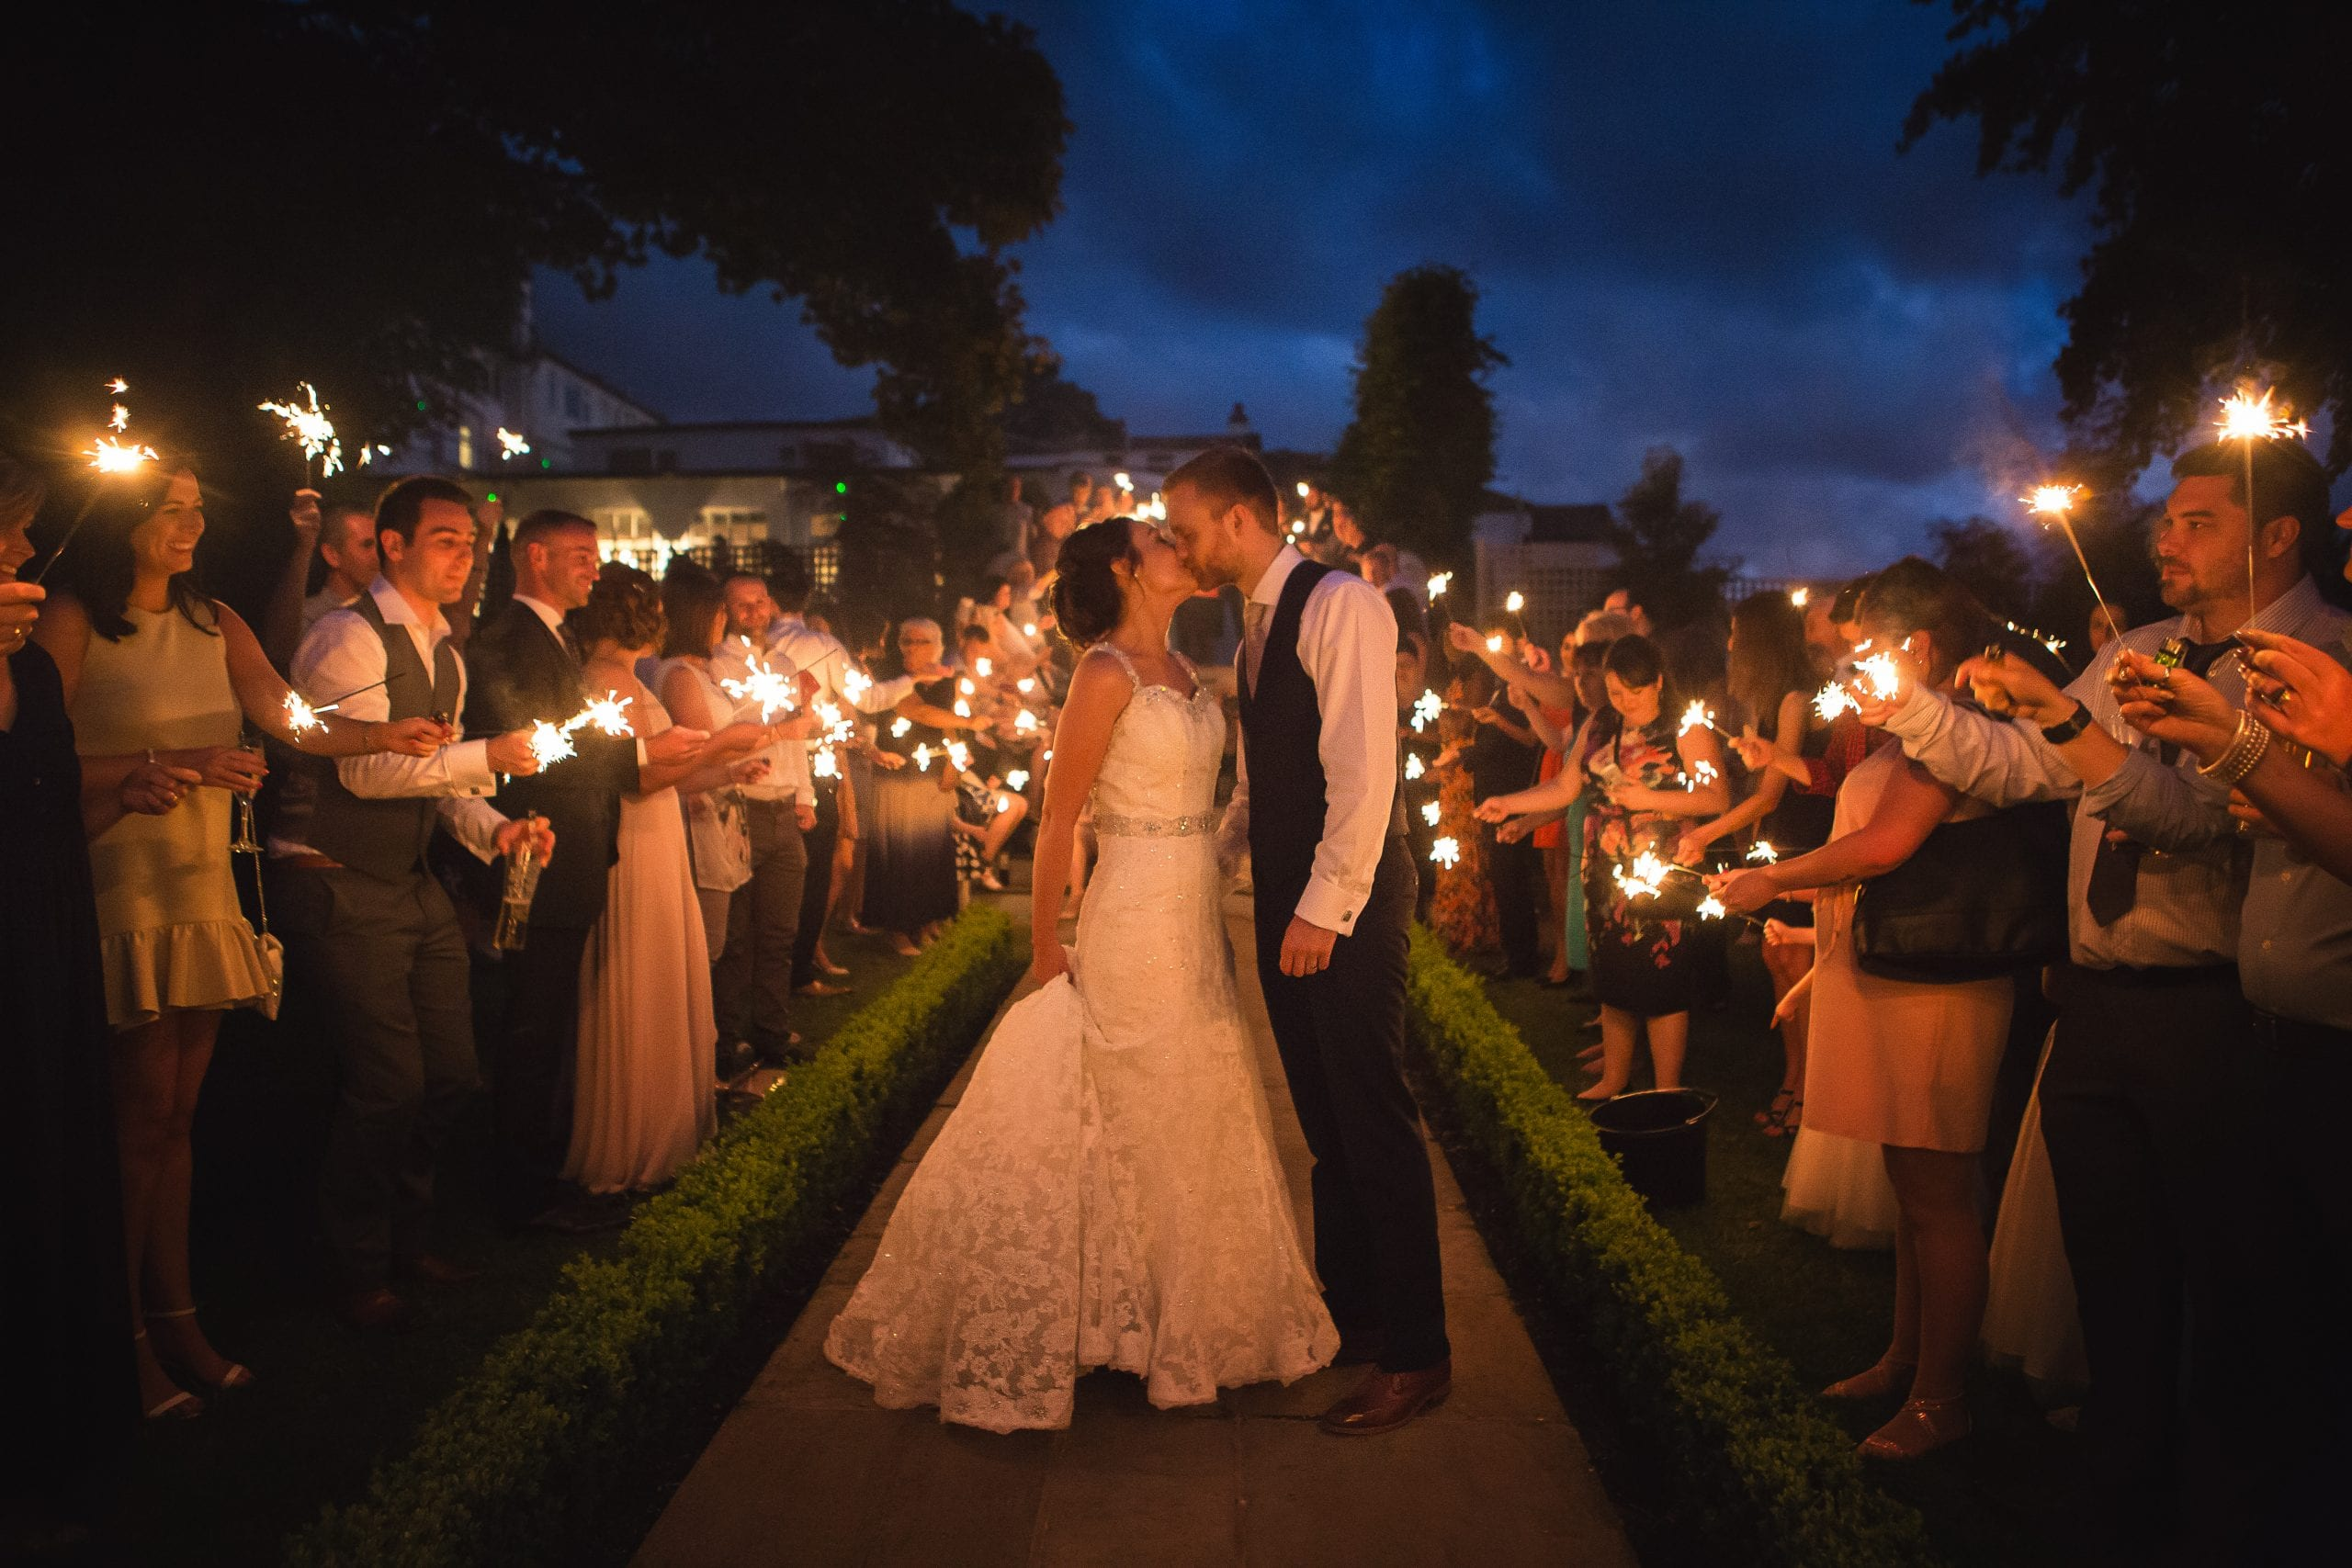 a bride and groom kissing whilst surrounded by guests with sparklers. By Warwick House wedding photographer S2 Images